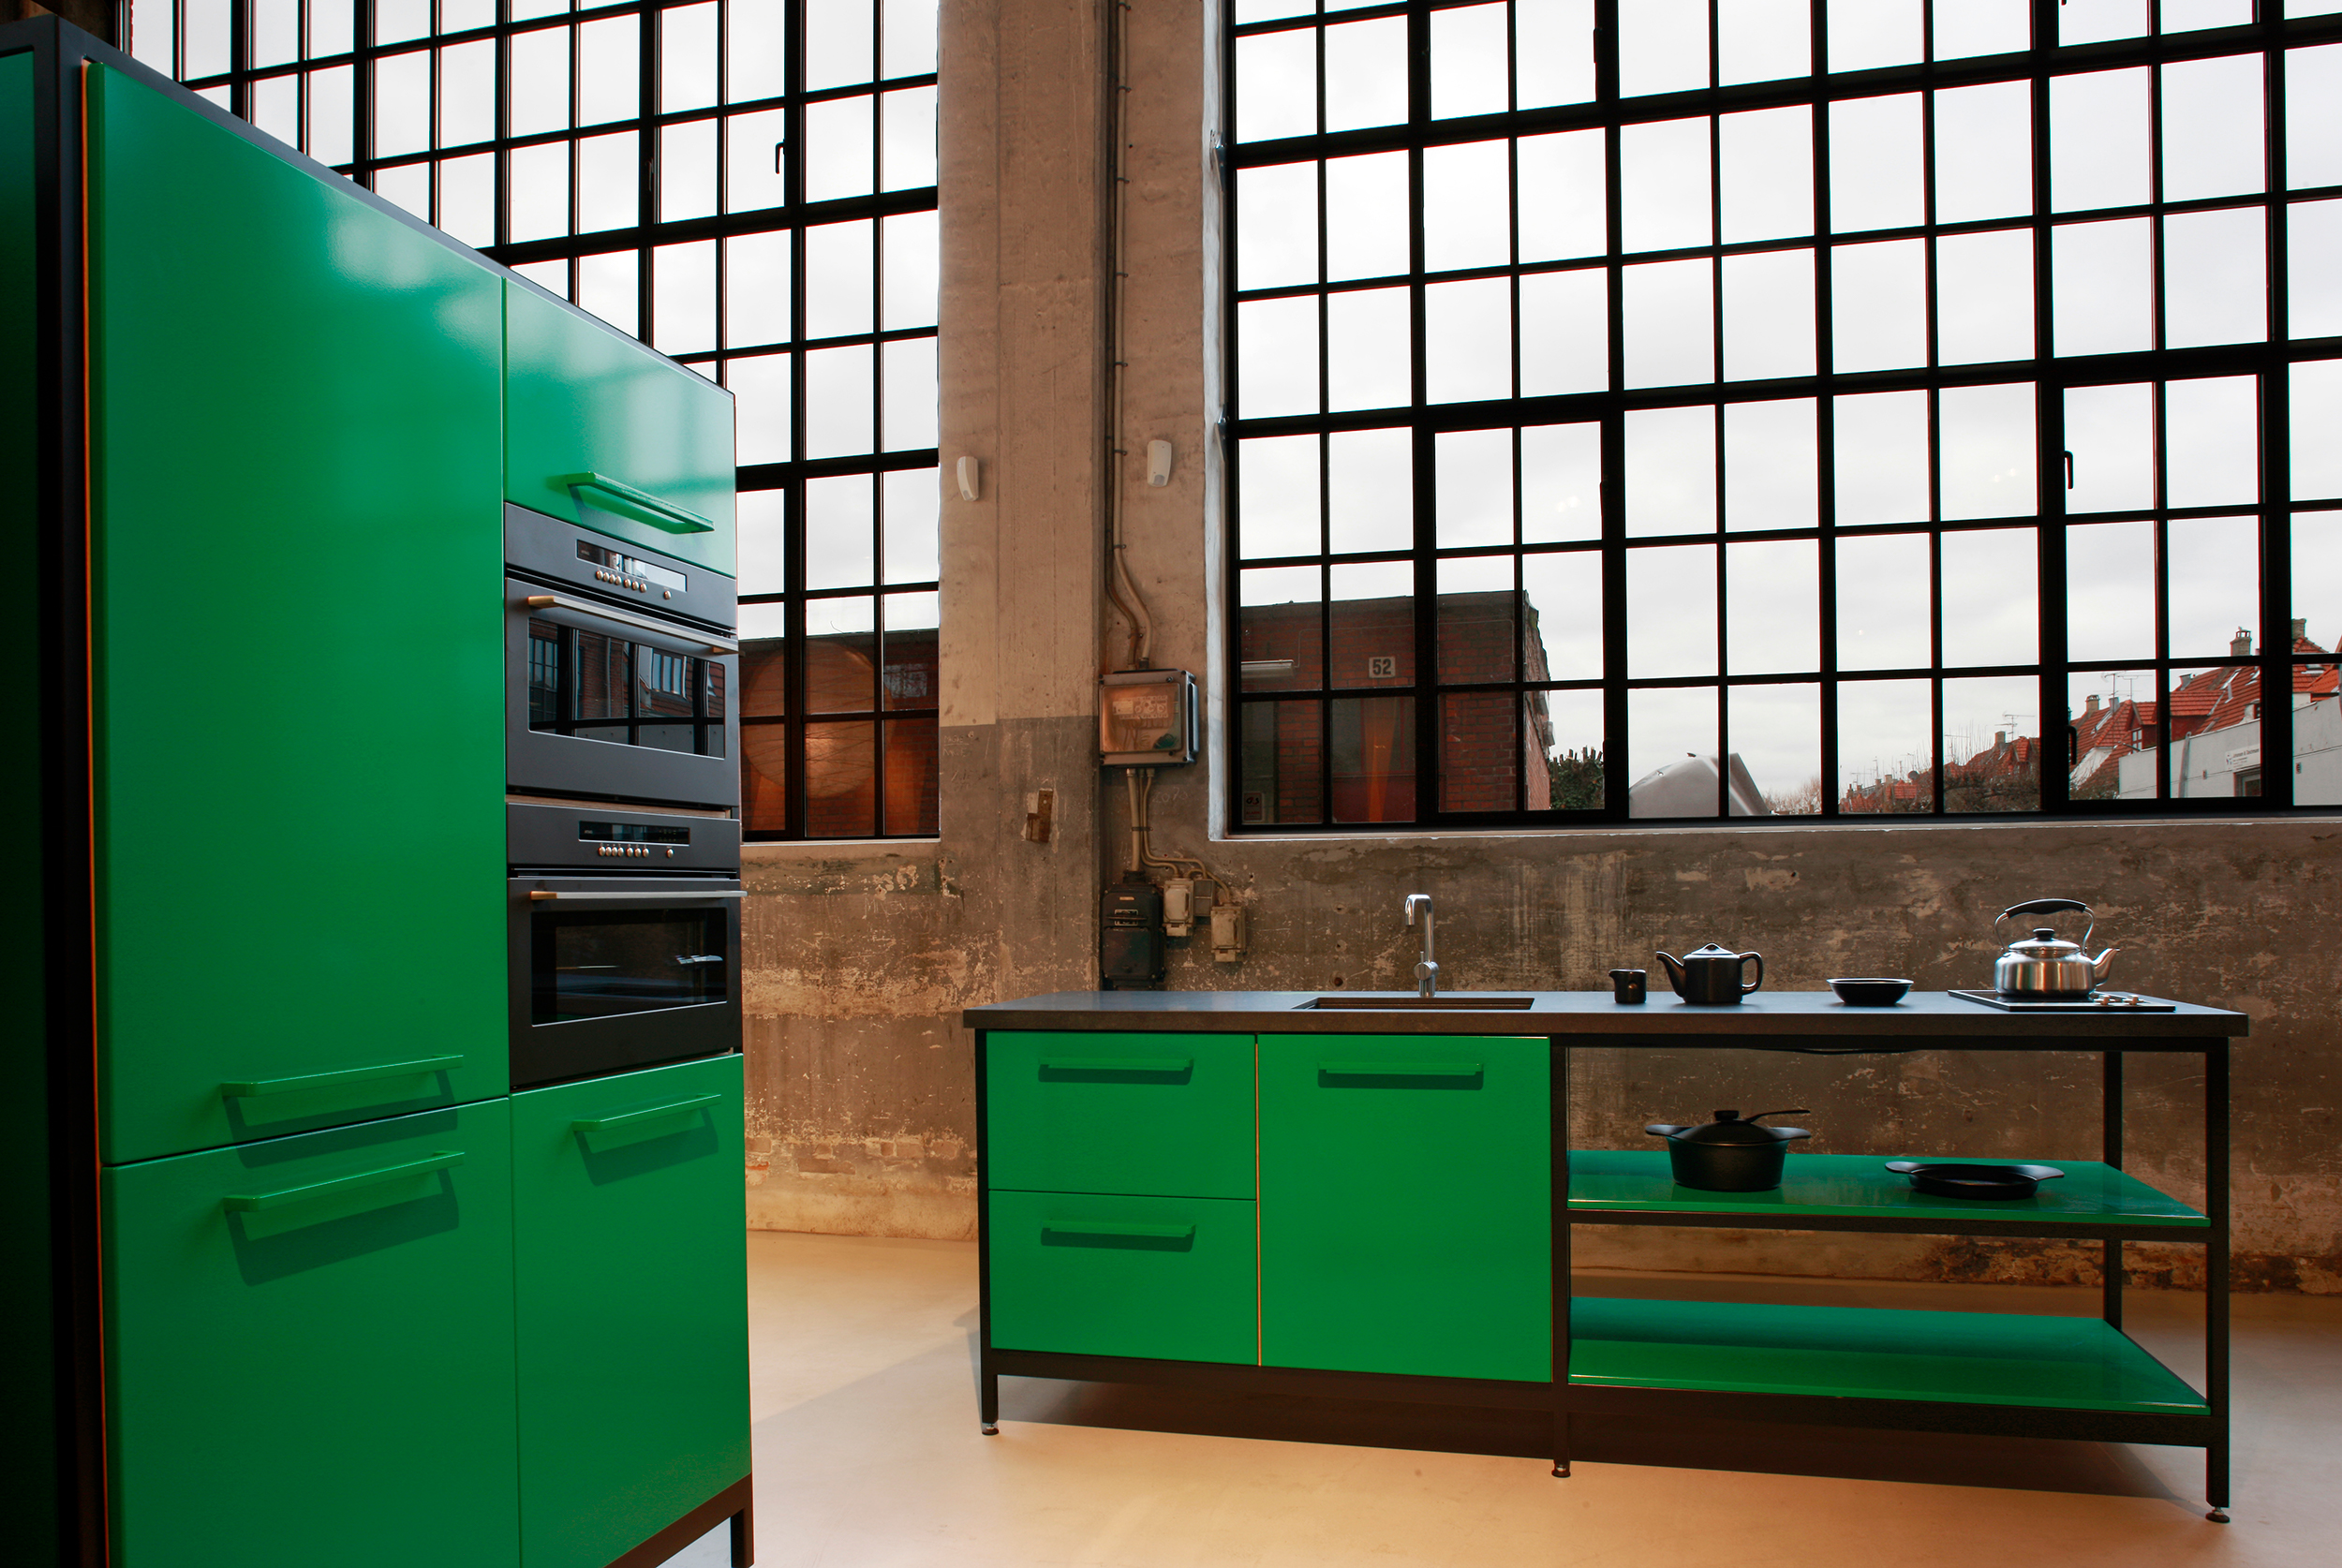 Green Steel Cph Square 01 frontpage.jpg